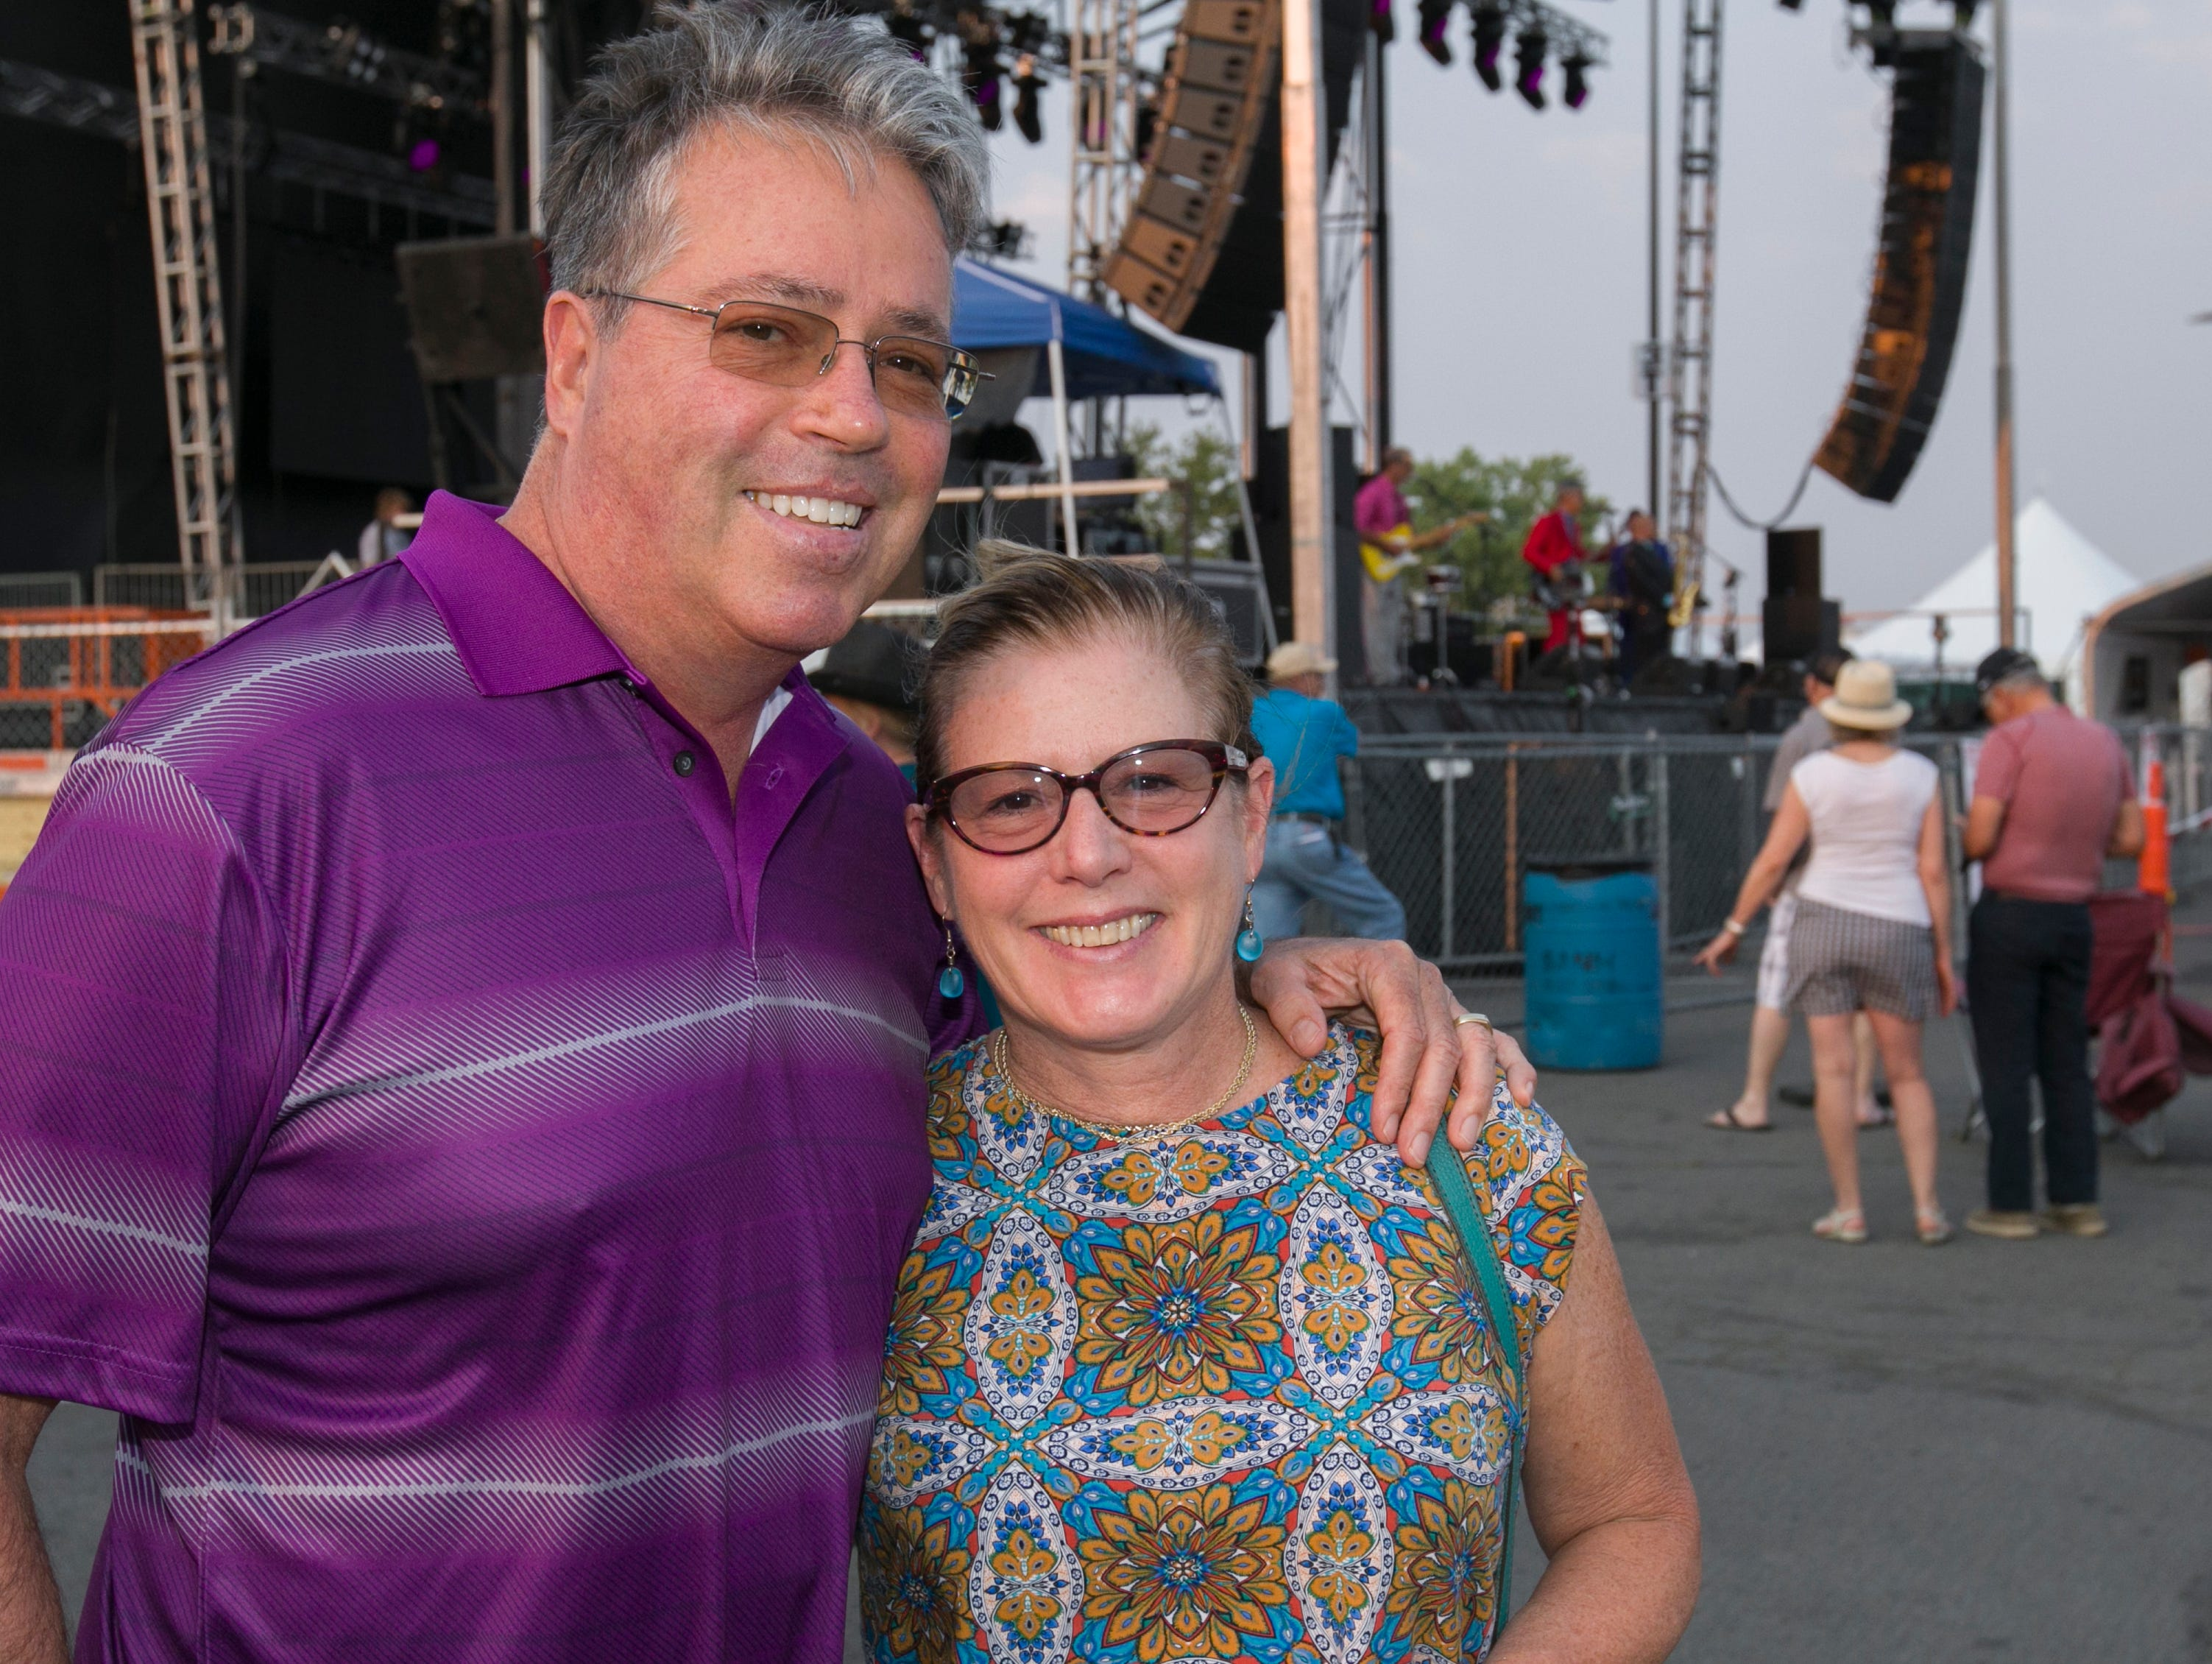 Tim and Jody Burke during the Hot August Nights Eddie Money concert at the Grand Sierra Resort in Reno on Thursday, August 9, 2018.